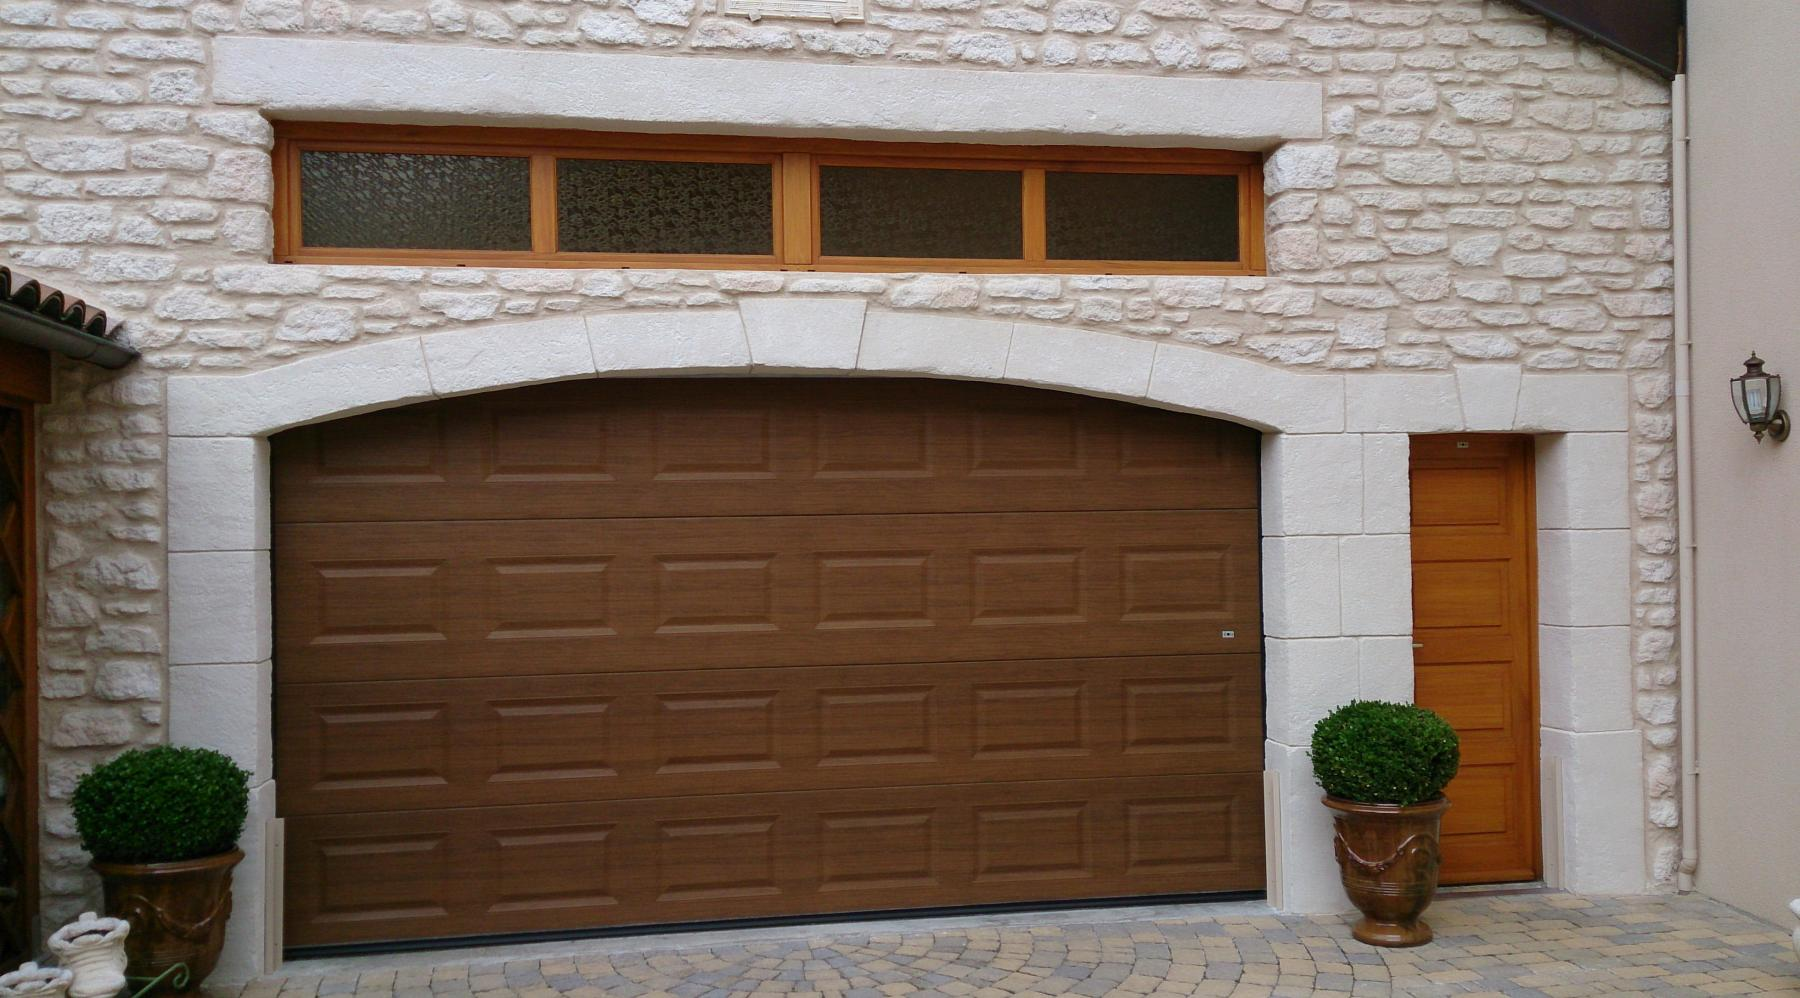 Galerie portes de garage weigerding for Porte garage sectionnelle